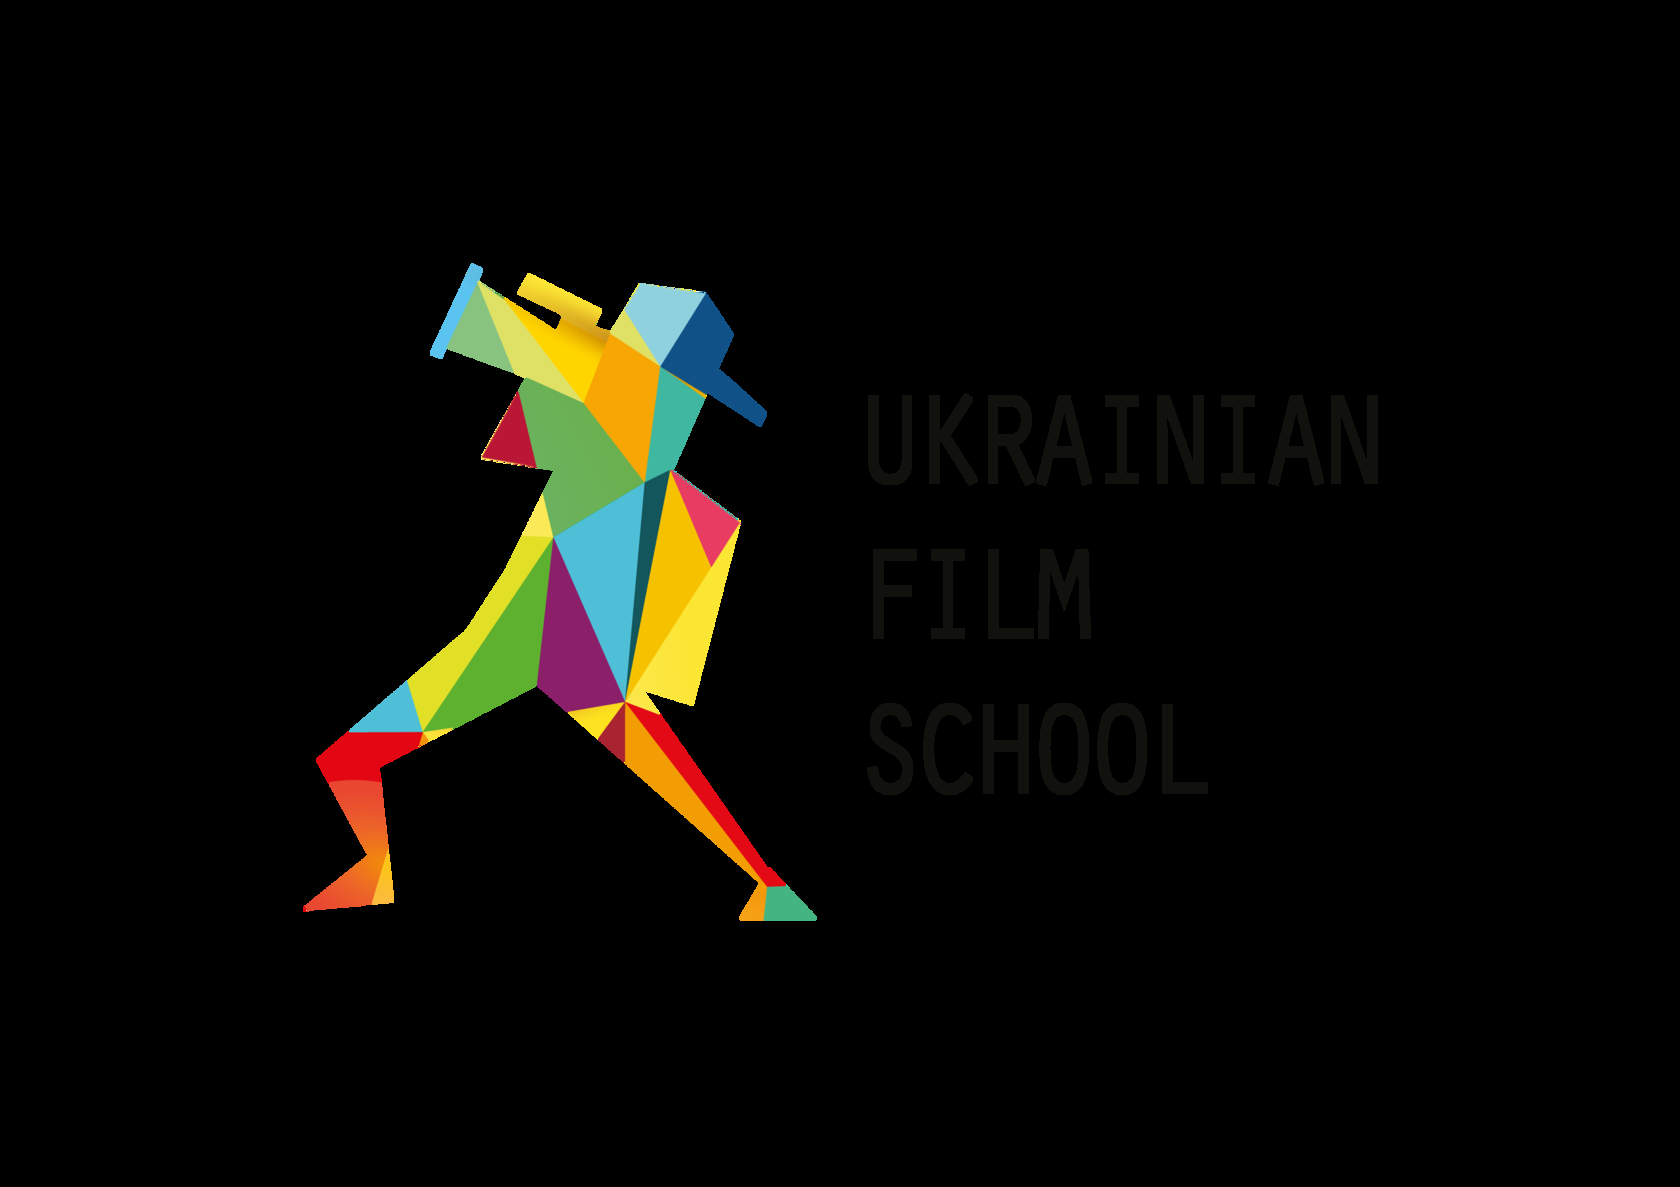 Ukrainian Film School